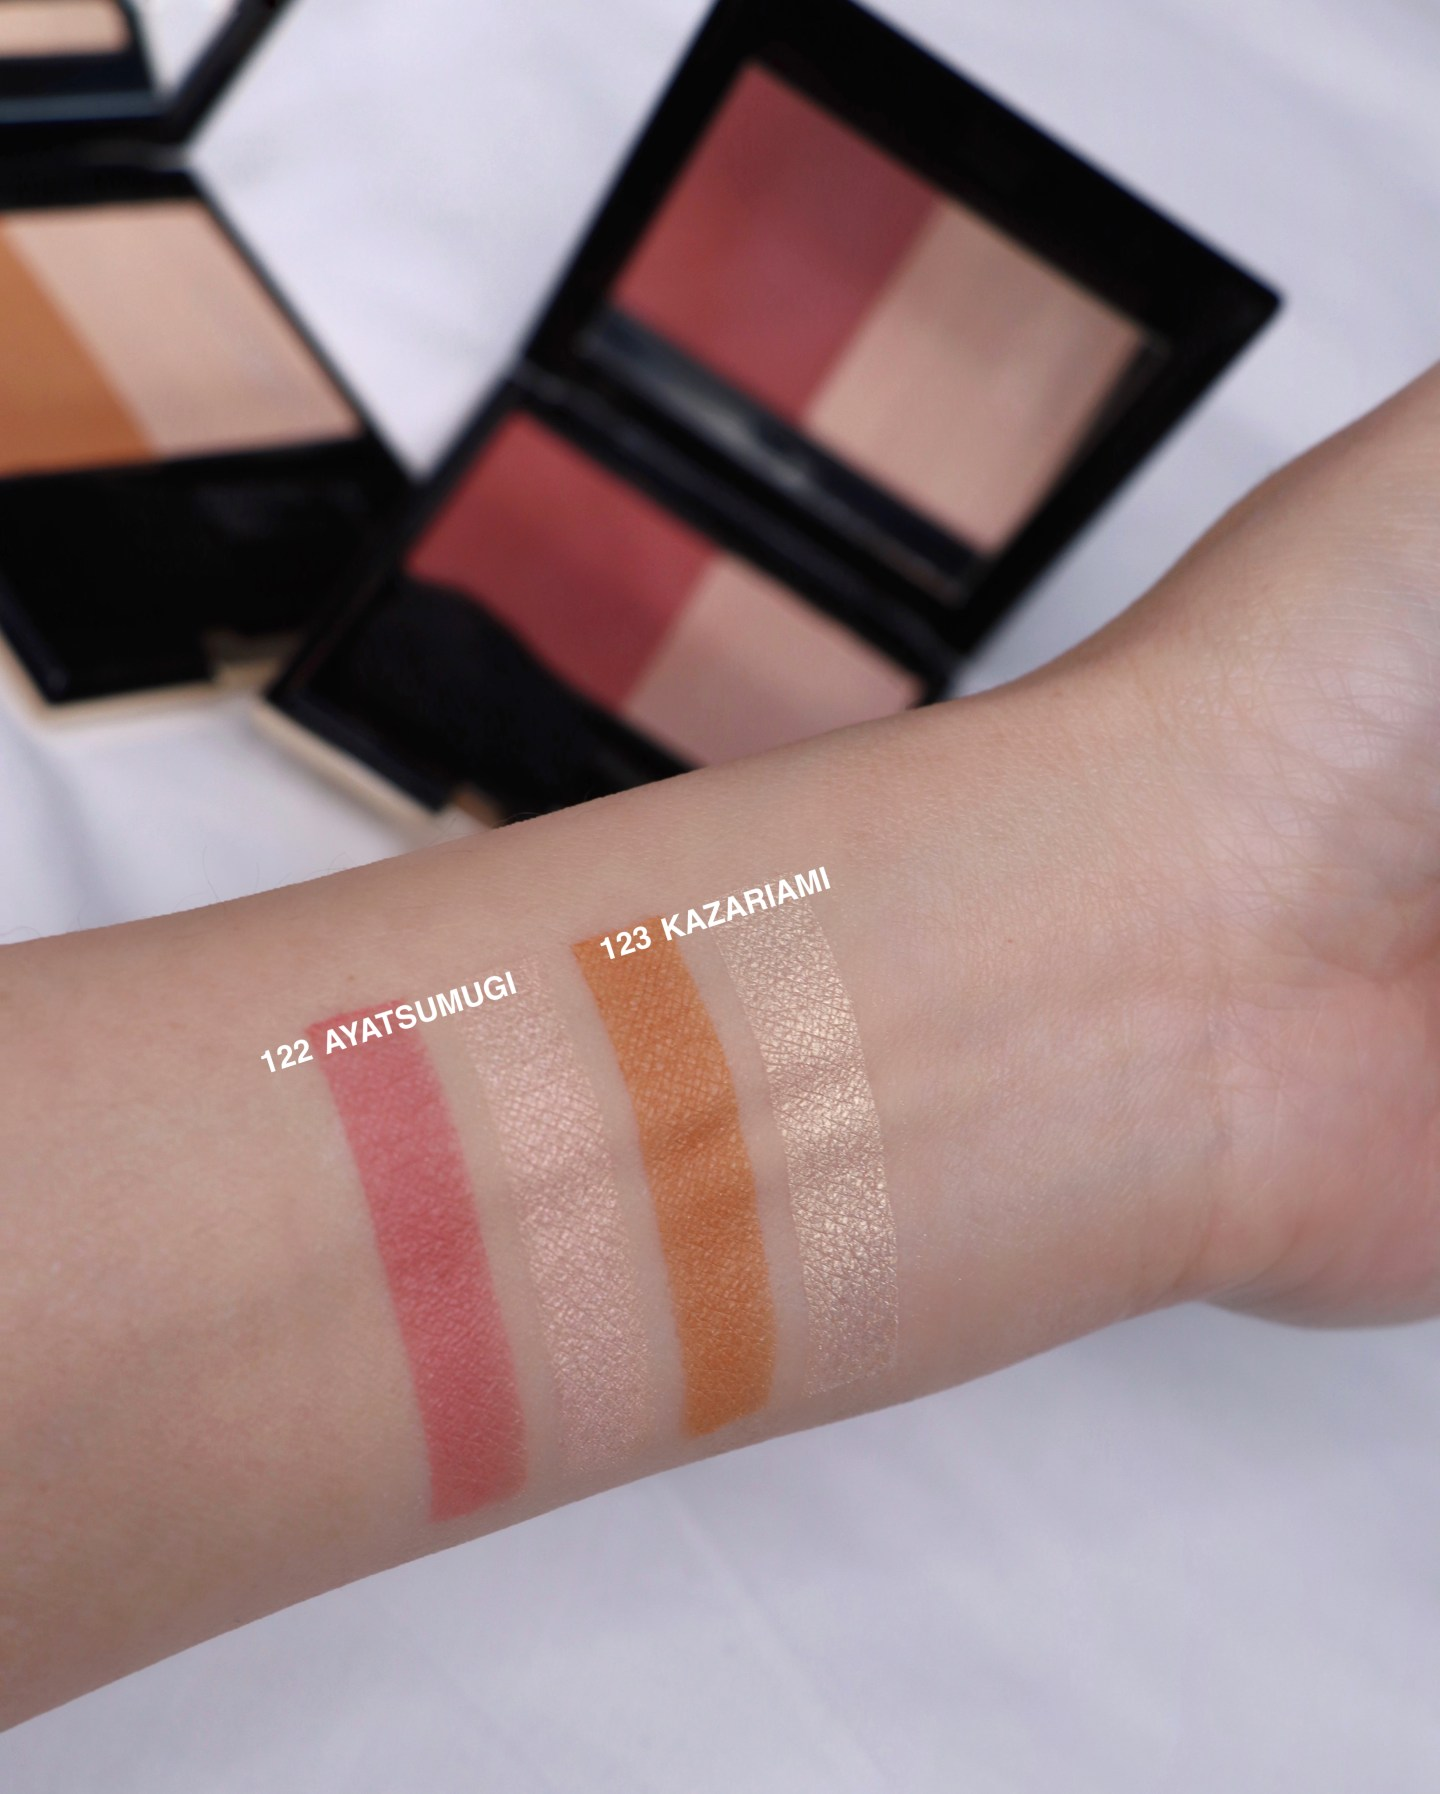 SUQQU 2020 Holiday Collection Pure Color Blush Swatches